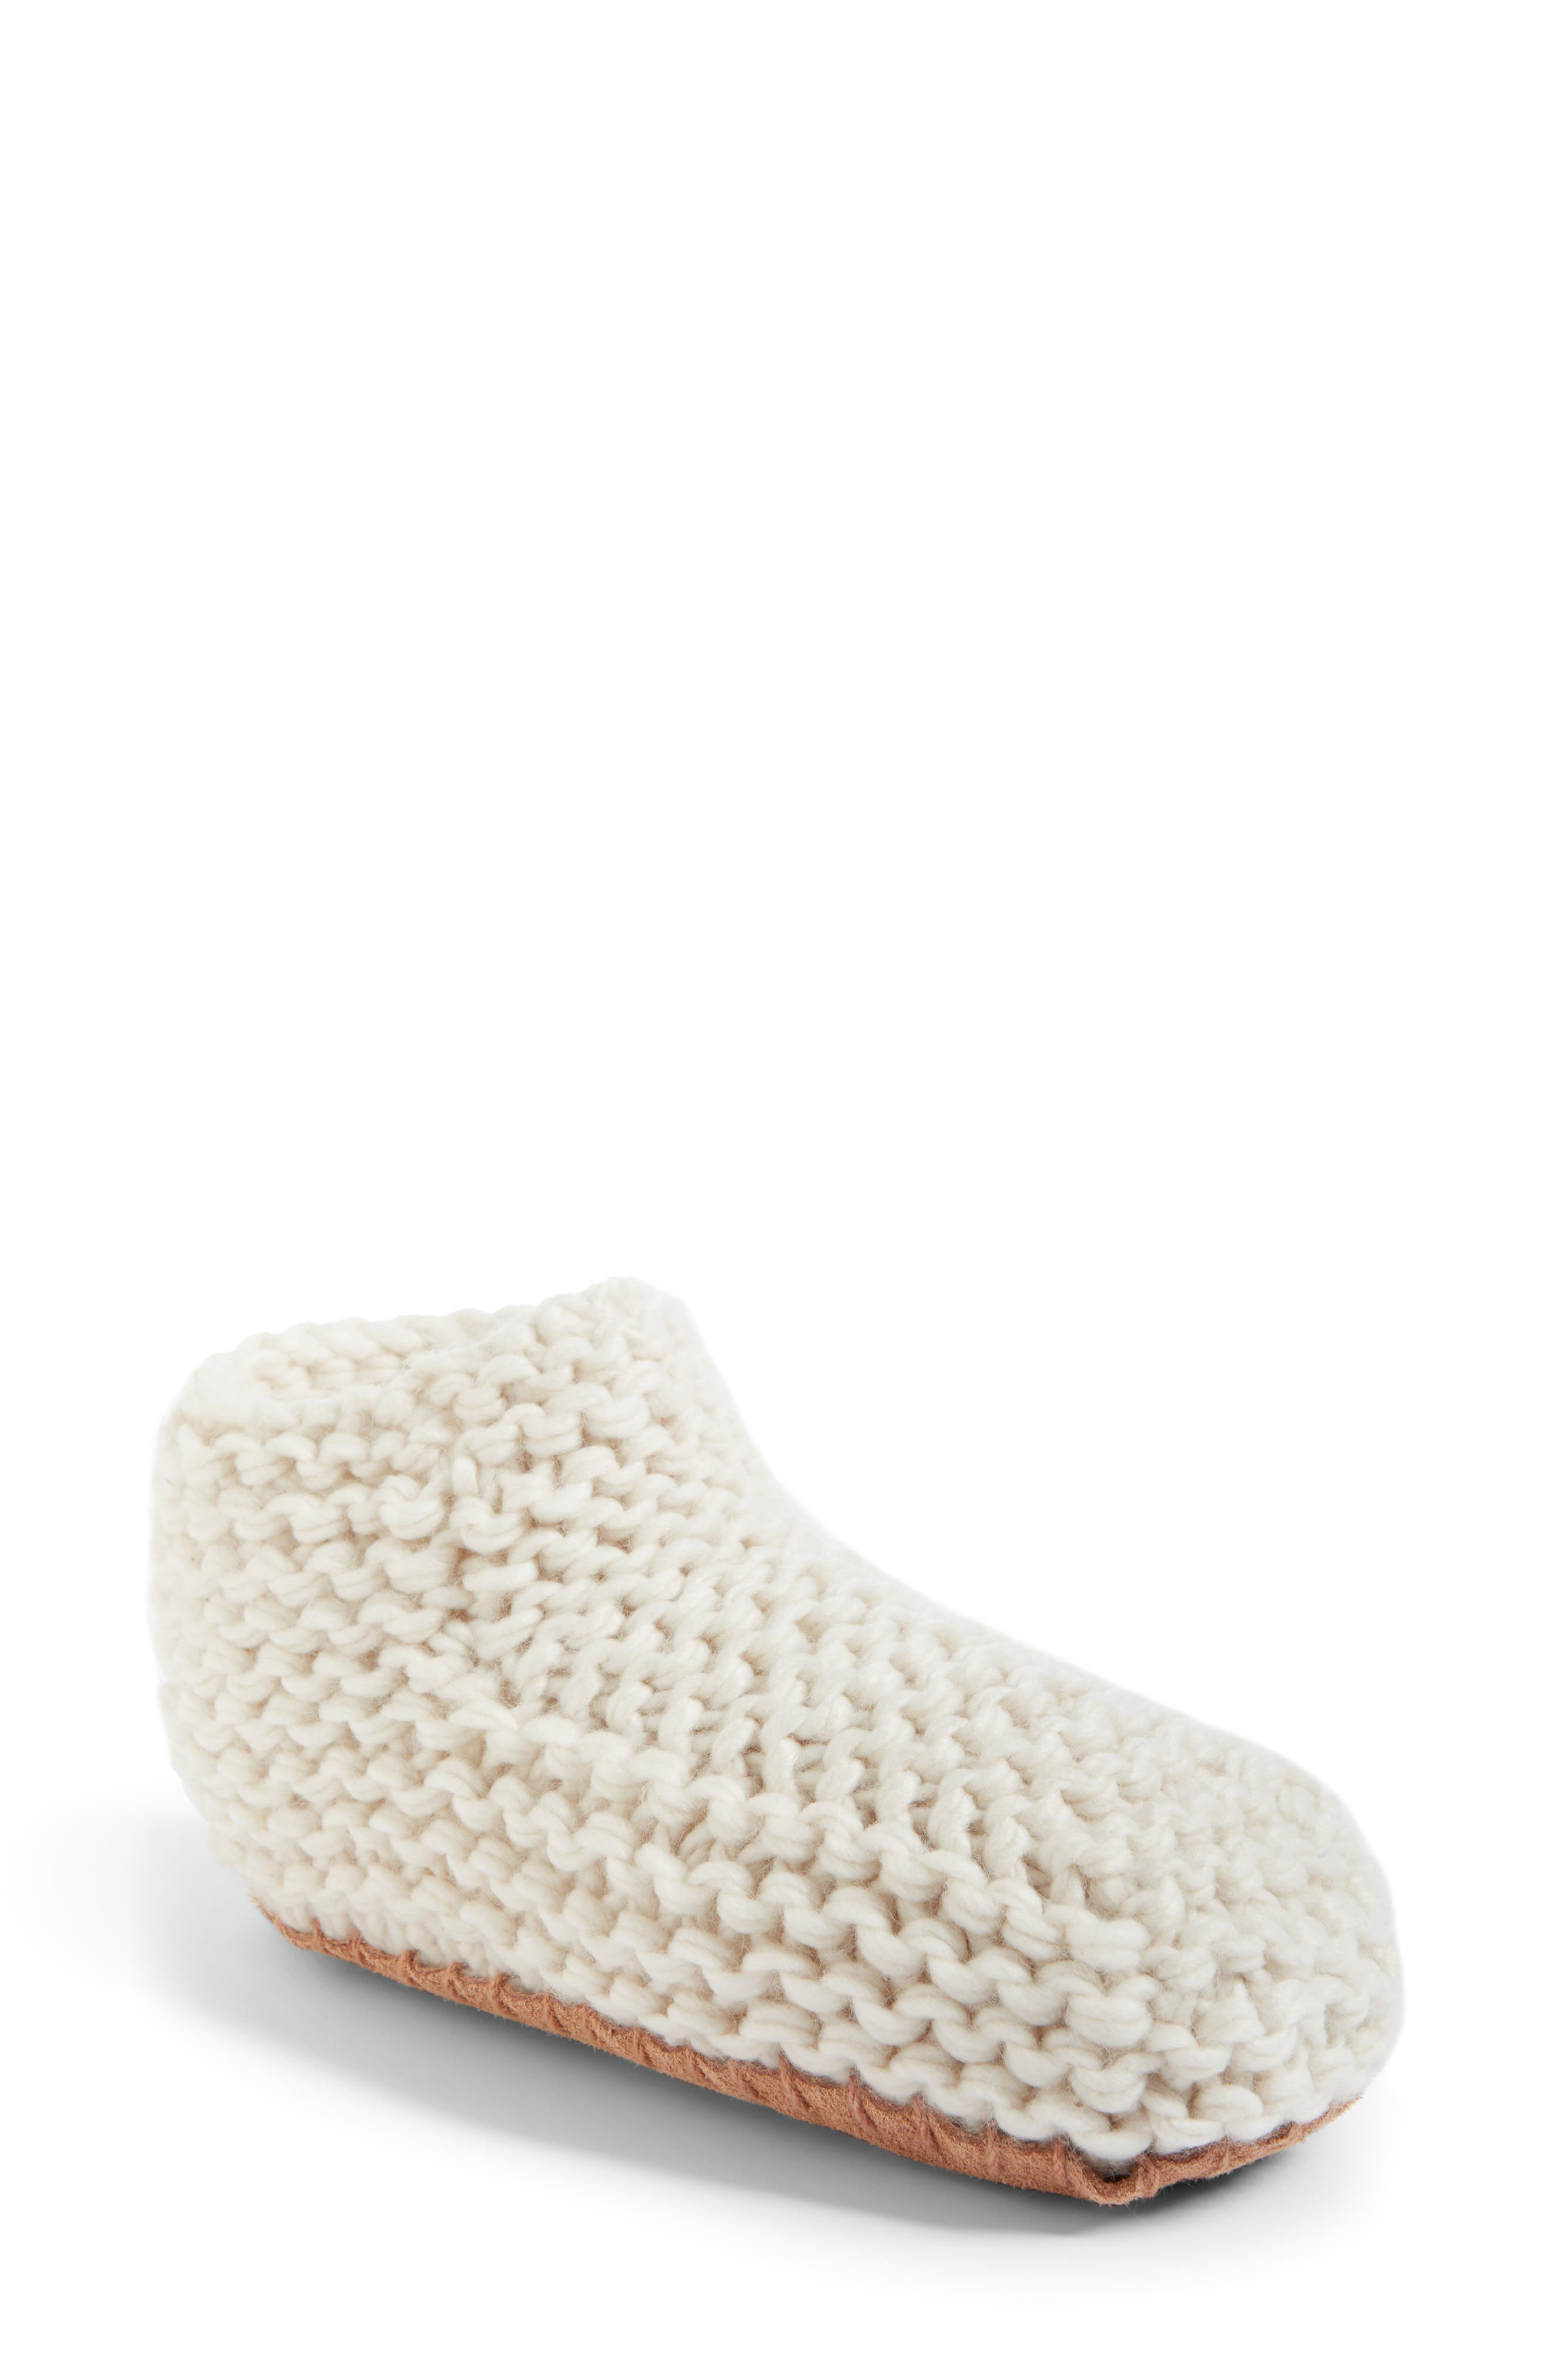 Alternate Image 1 Selected - Lemon Knit Slipper Bootie